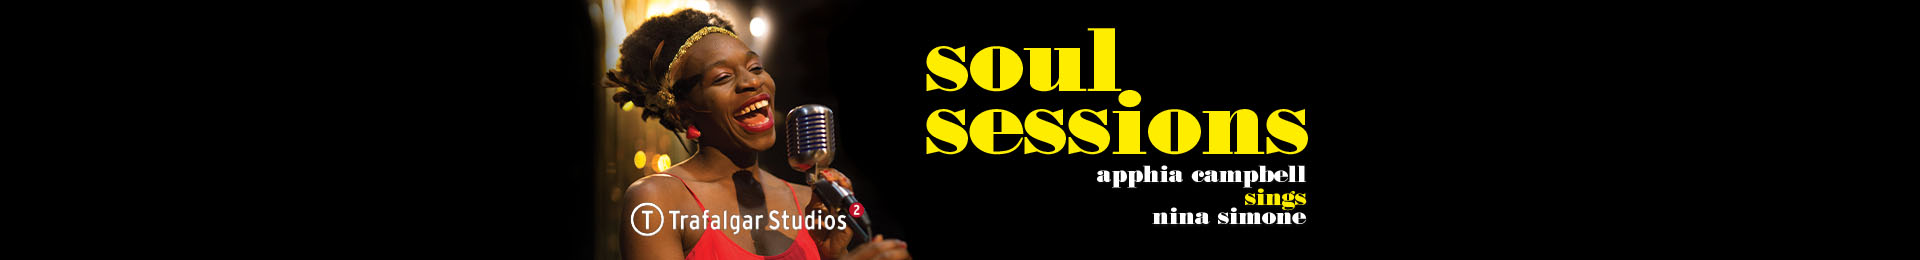 Soul Sessions banner image